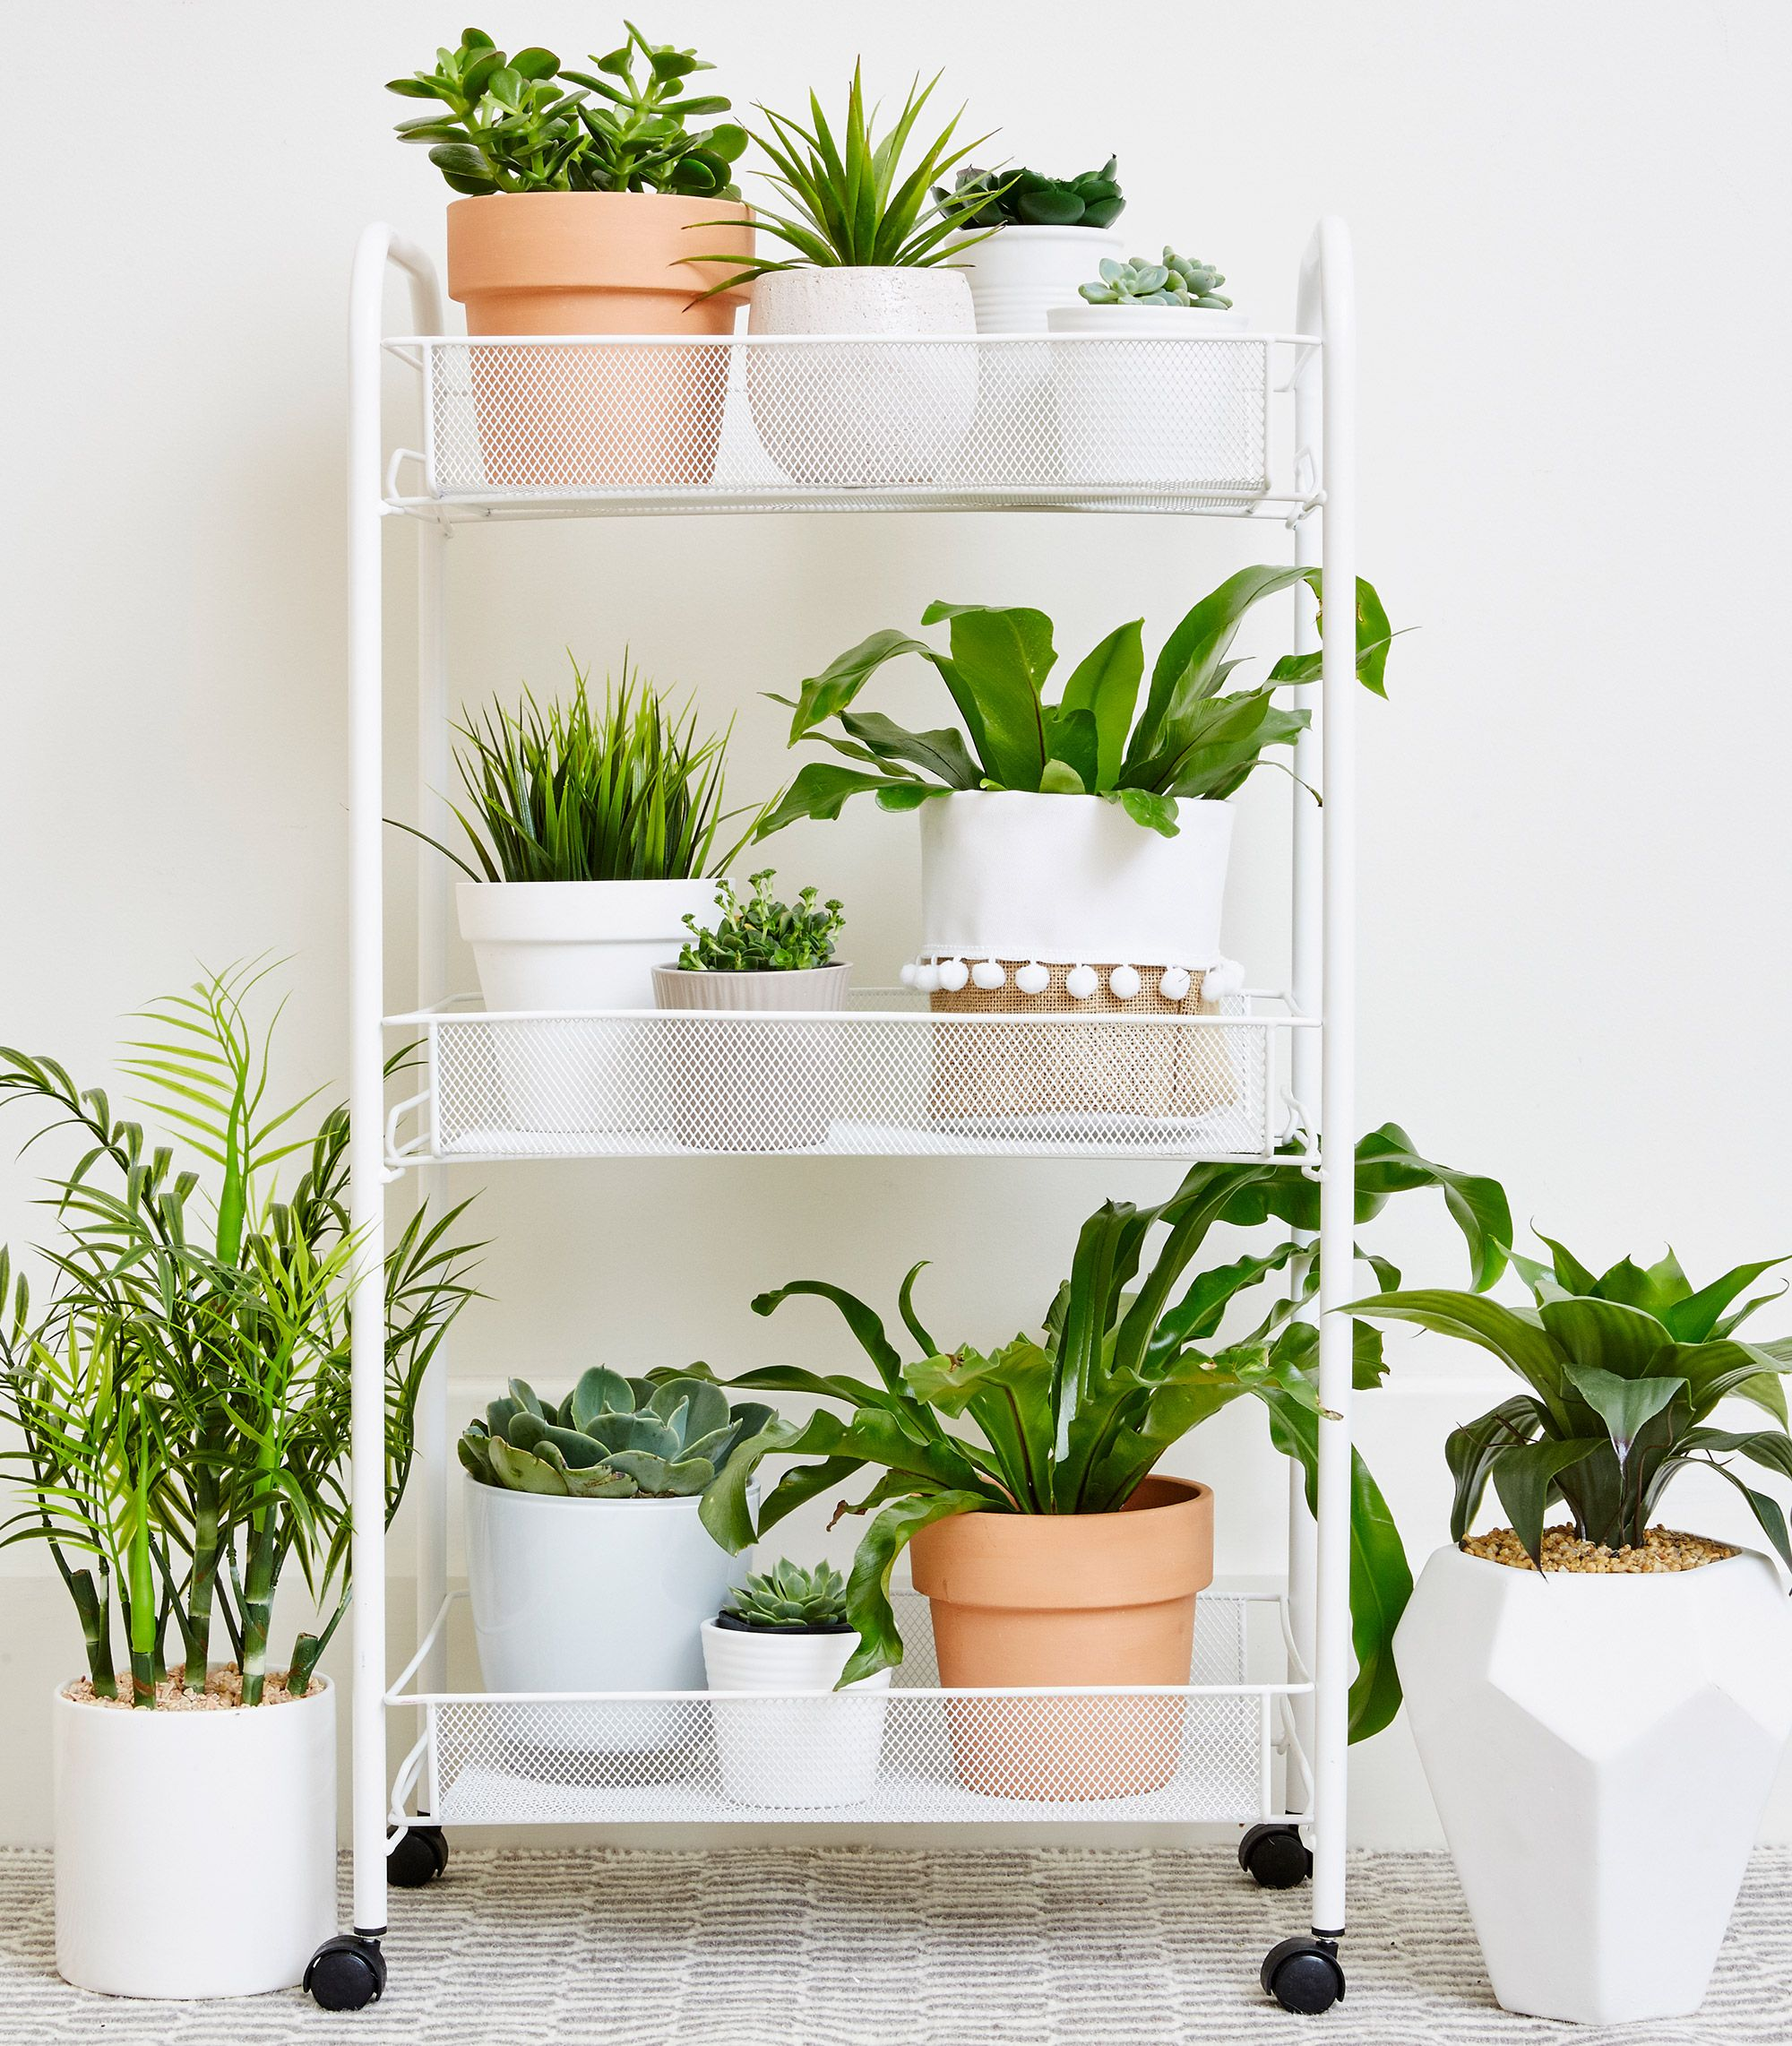 Clever hacks from kmart to brighten up your home on a budget home